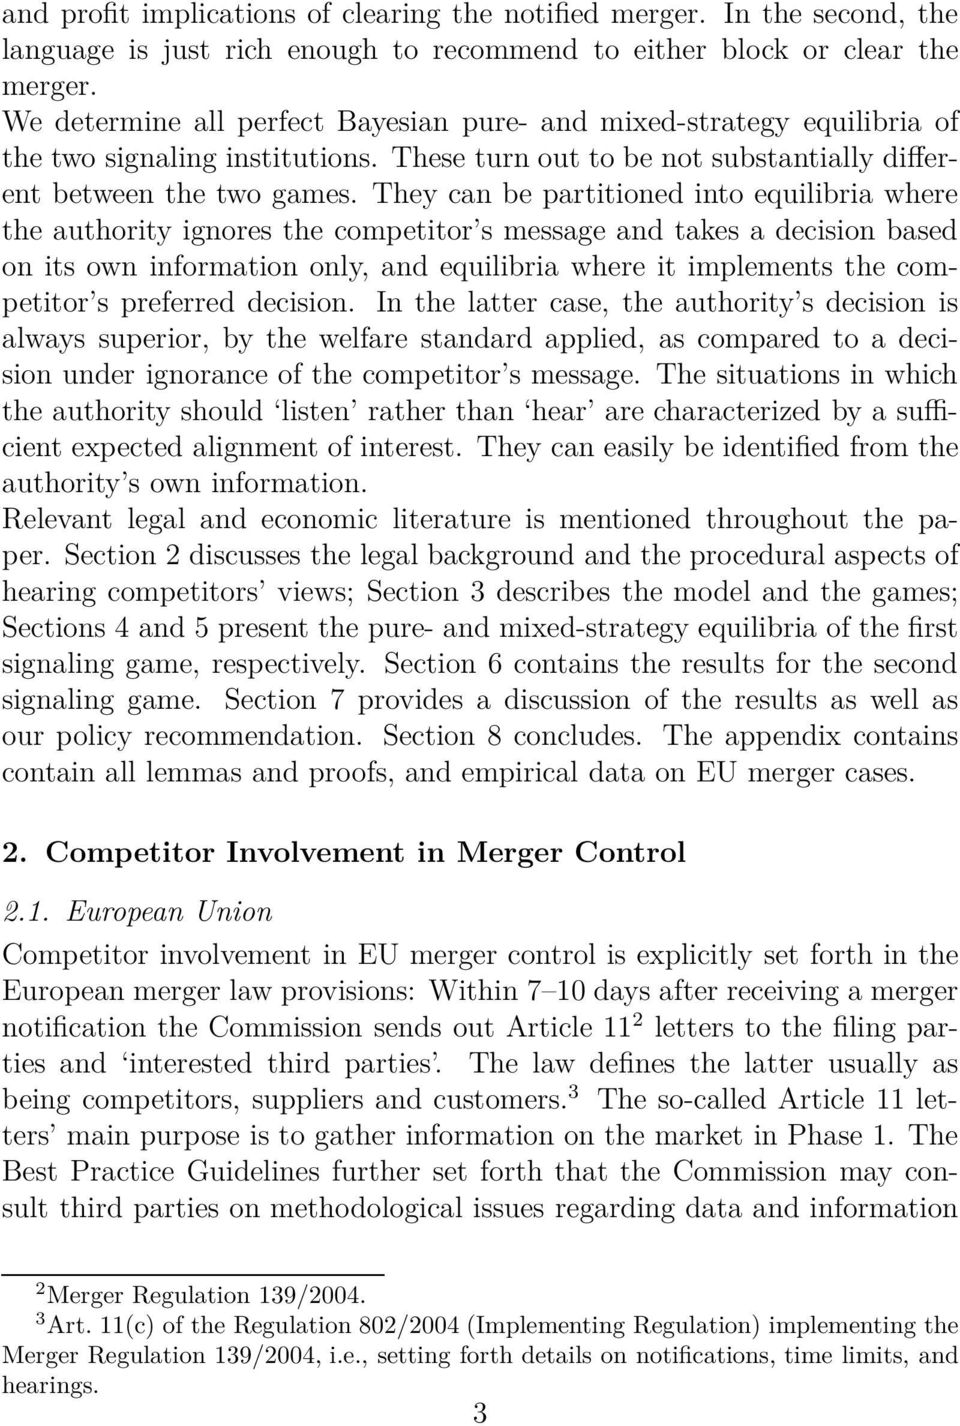 They can be partitioned into equilibria where the authority ignores the competitor s message and takes a decision based on its own information only, and equilibria where it implements the competitor